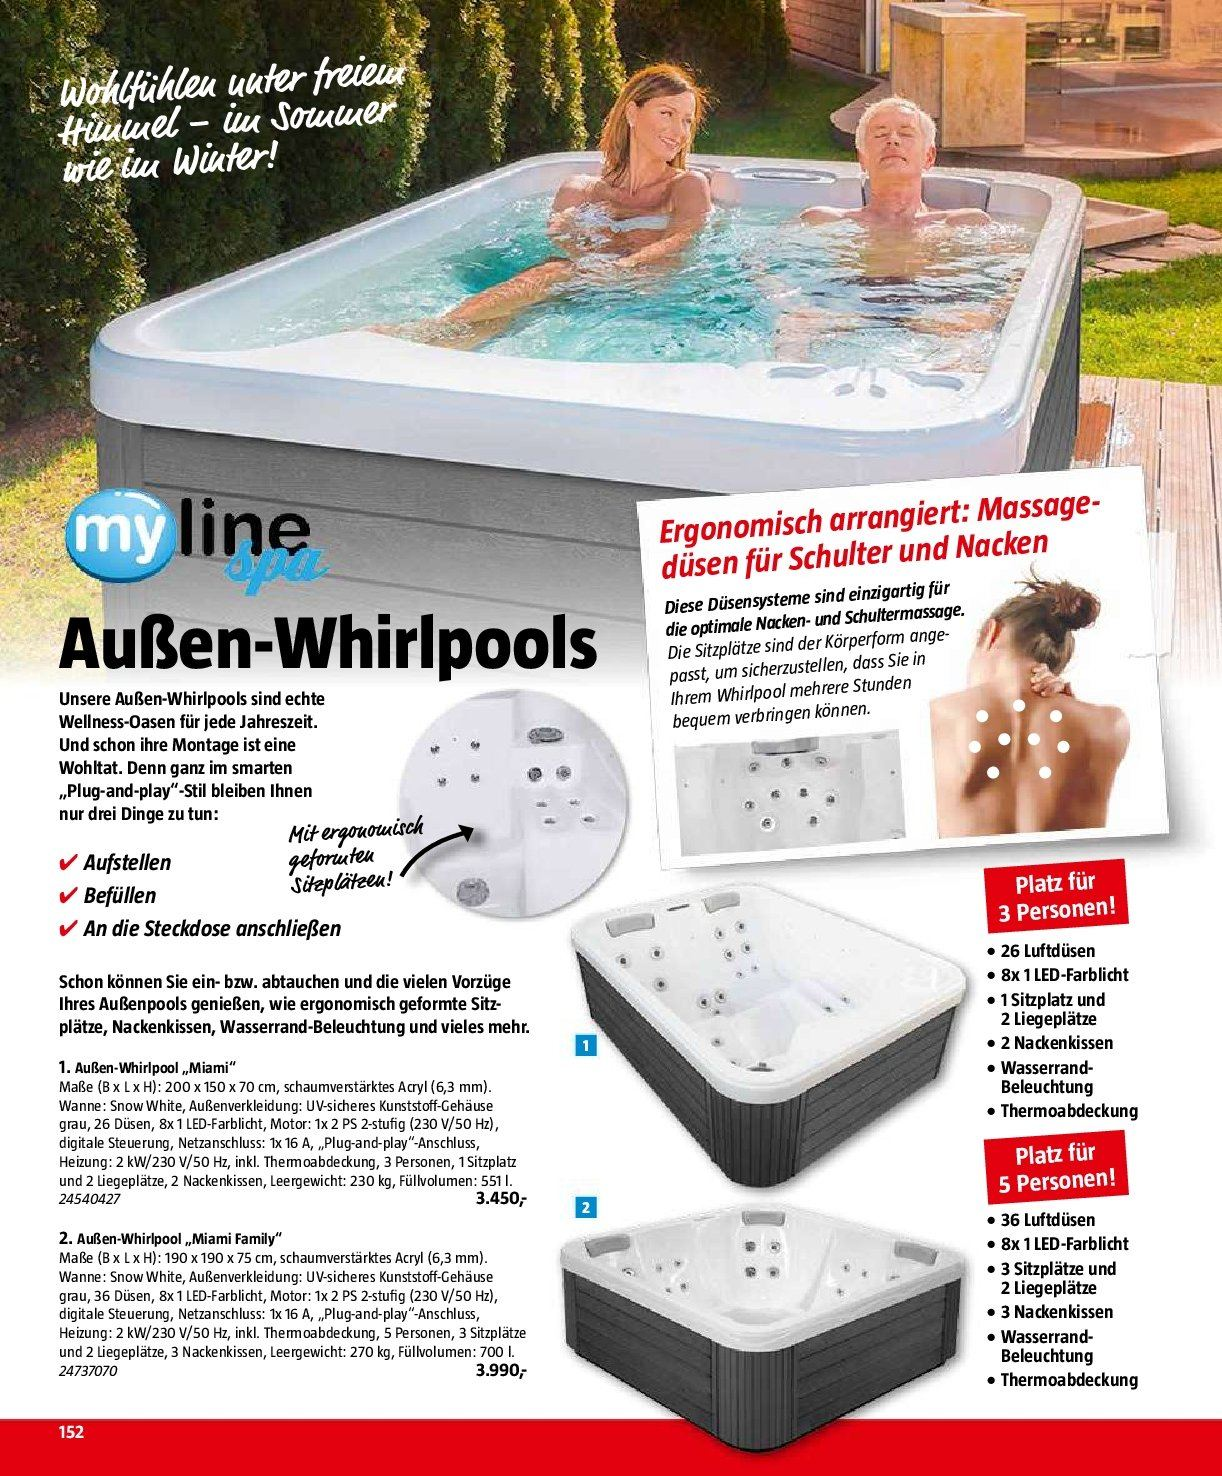 Whirlpool Garten Bauhaus Bauhaus Whirlpool Awesome Outdoor With Bauhaus Whirlpool Free